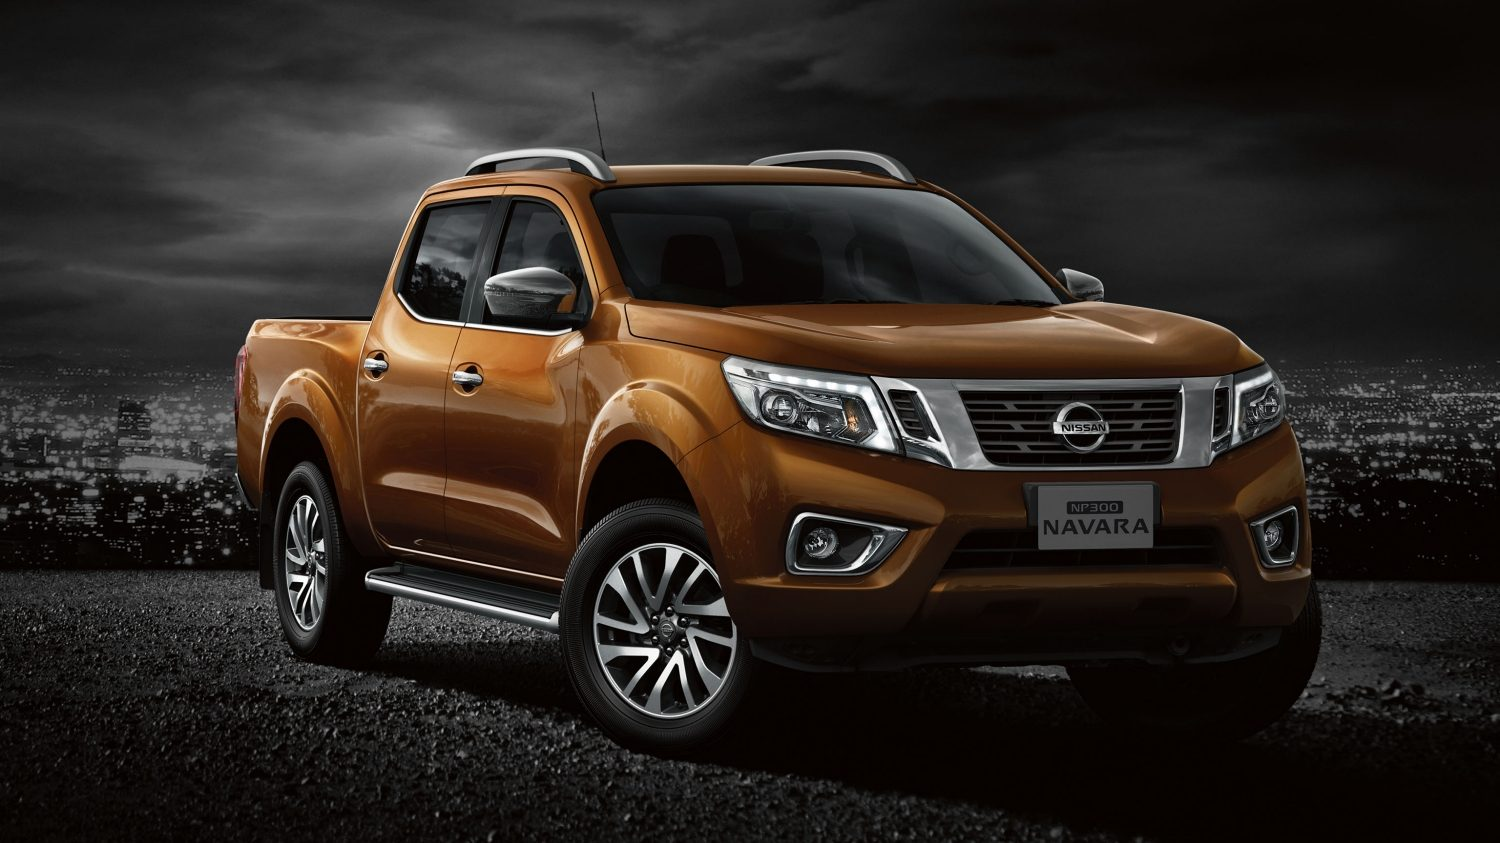 Award winning all new nissan np300 navara wins international pick up crown